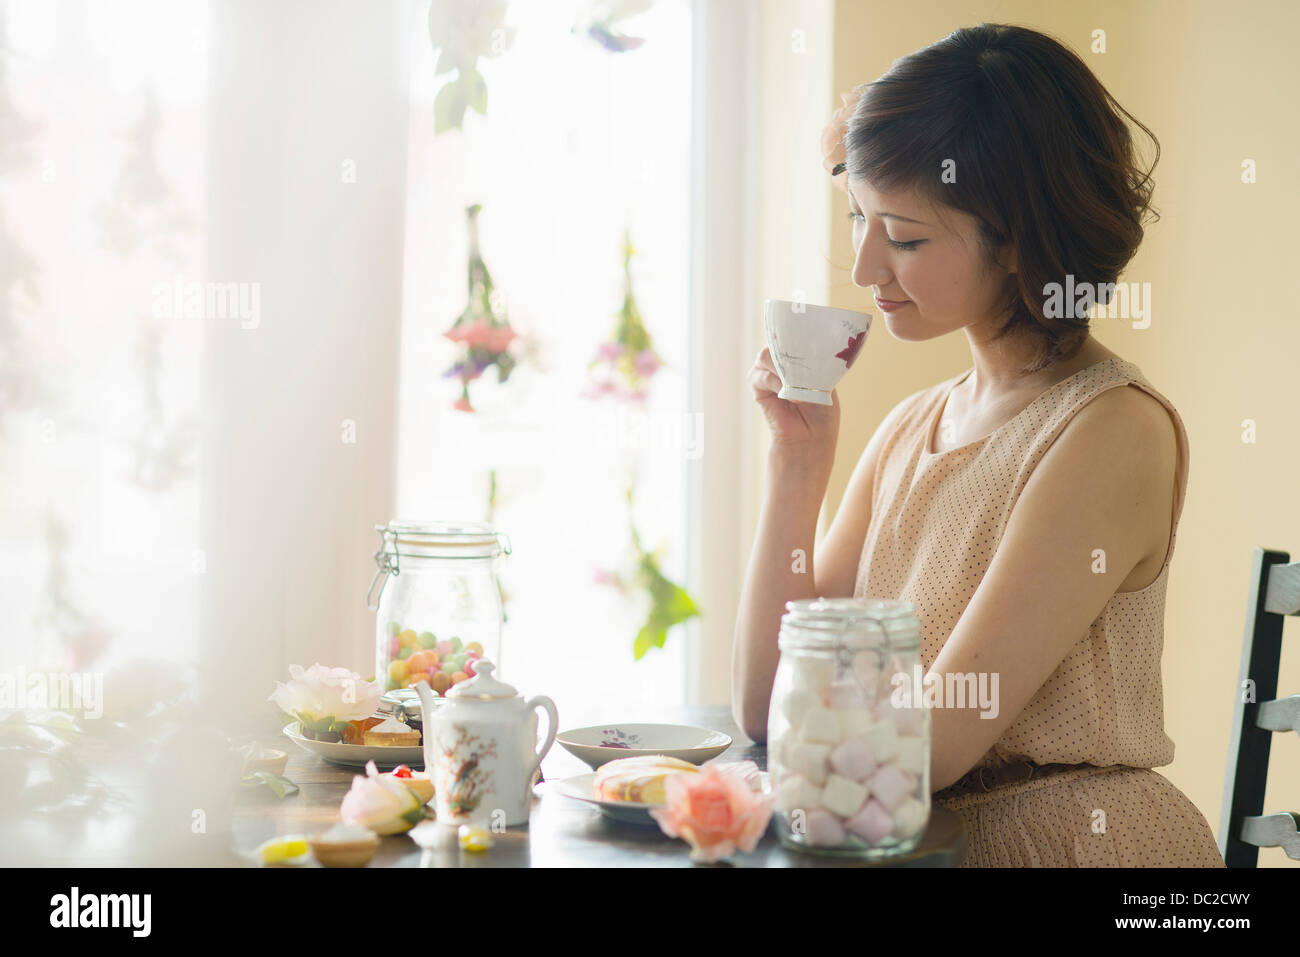 Woman looking down at tea cup - Stock Image